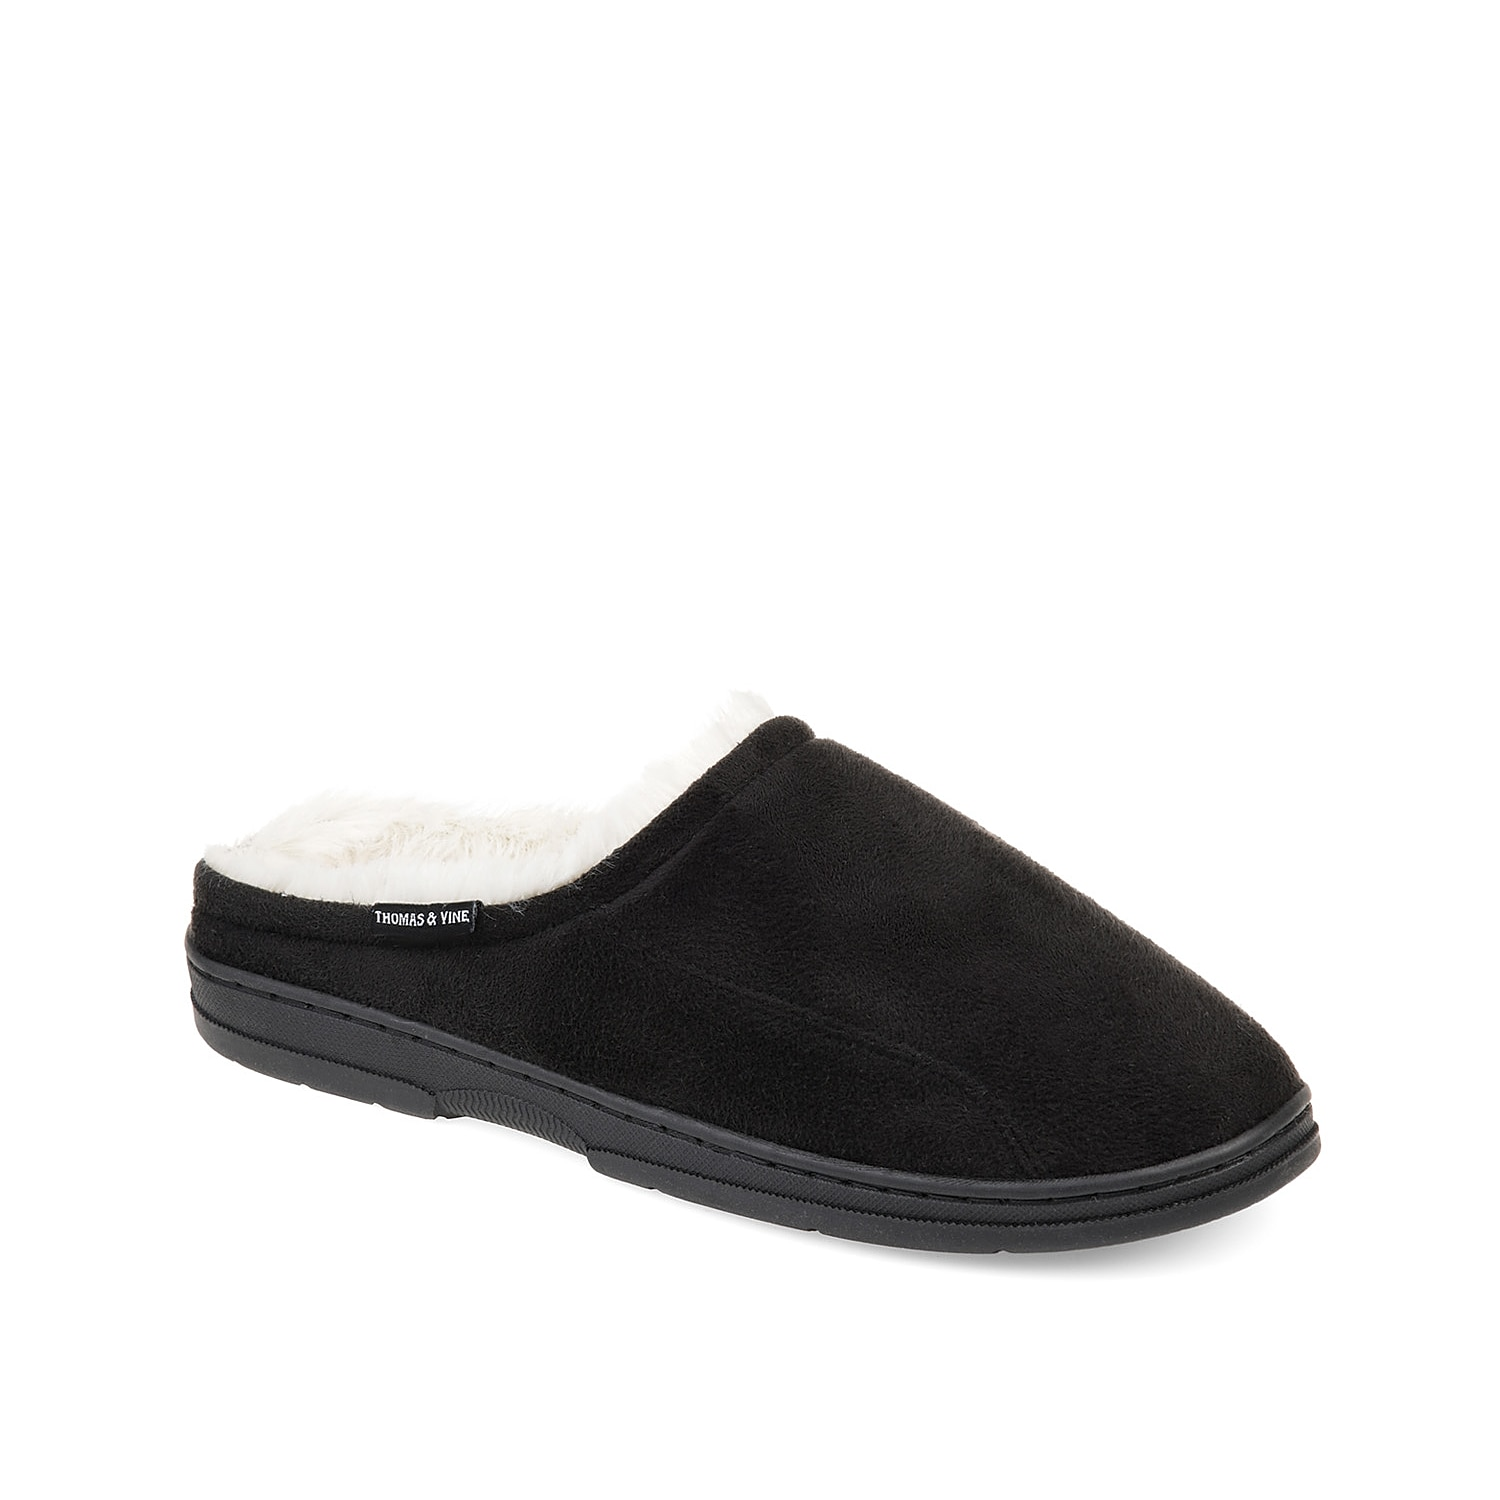 The Rodney clog by Thomas & Vine makes sure you receive all the comfort and warmth you need. Soft faux suede upper is backed by a warm faux fur lining, comfortable Memory Foam insole and long-lasting rubber sole.